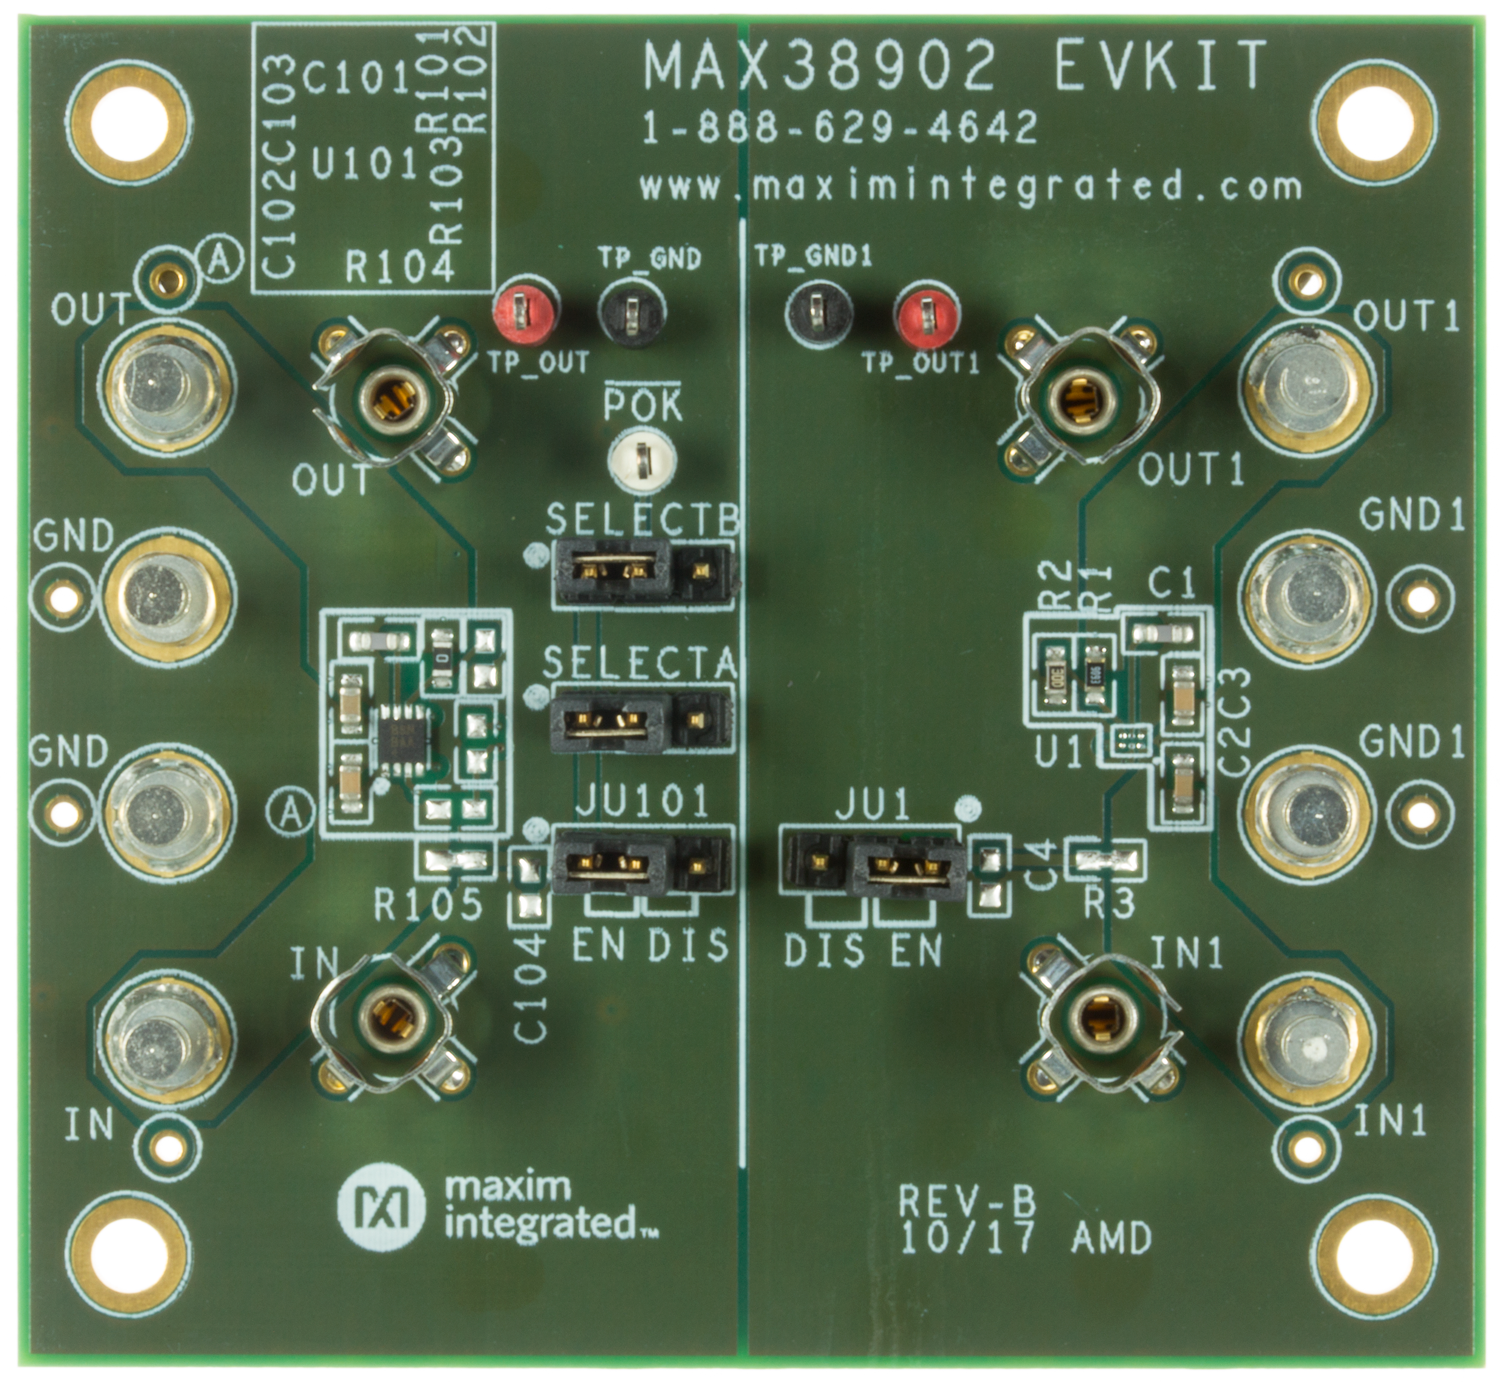 Low Dropout Linear Regulators Ldos Maxim Buy Integrated Electronics Analog And Digital Circuits Systems 2 Max38902evkit